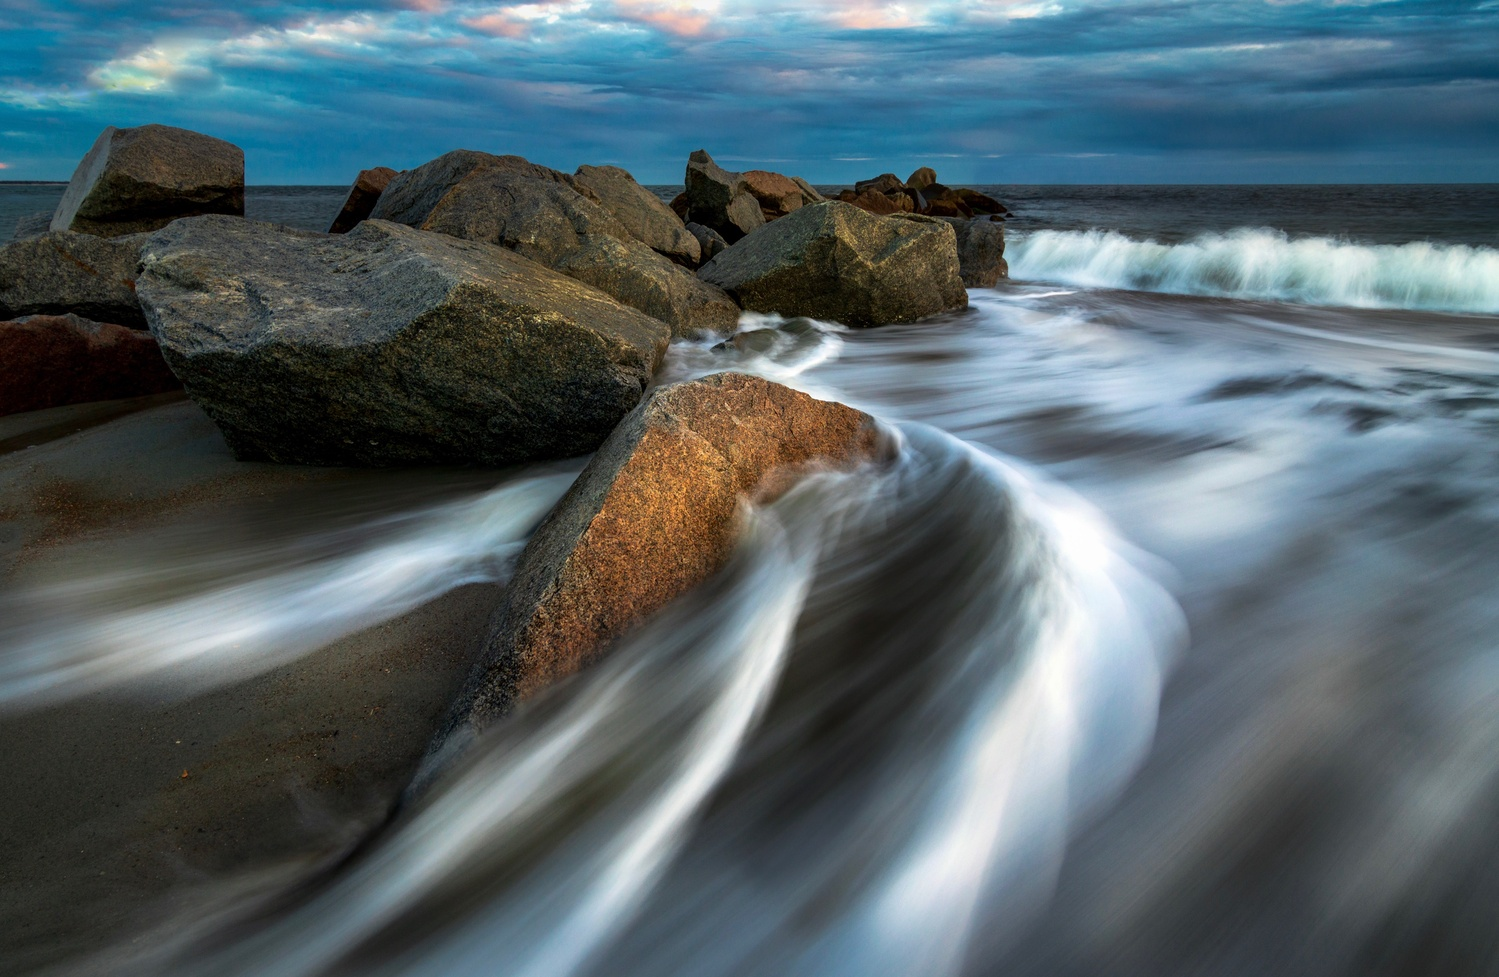 Rocks and Water by Kyle Foreman